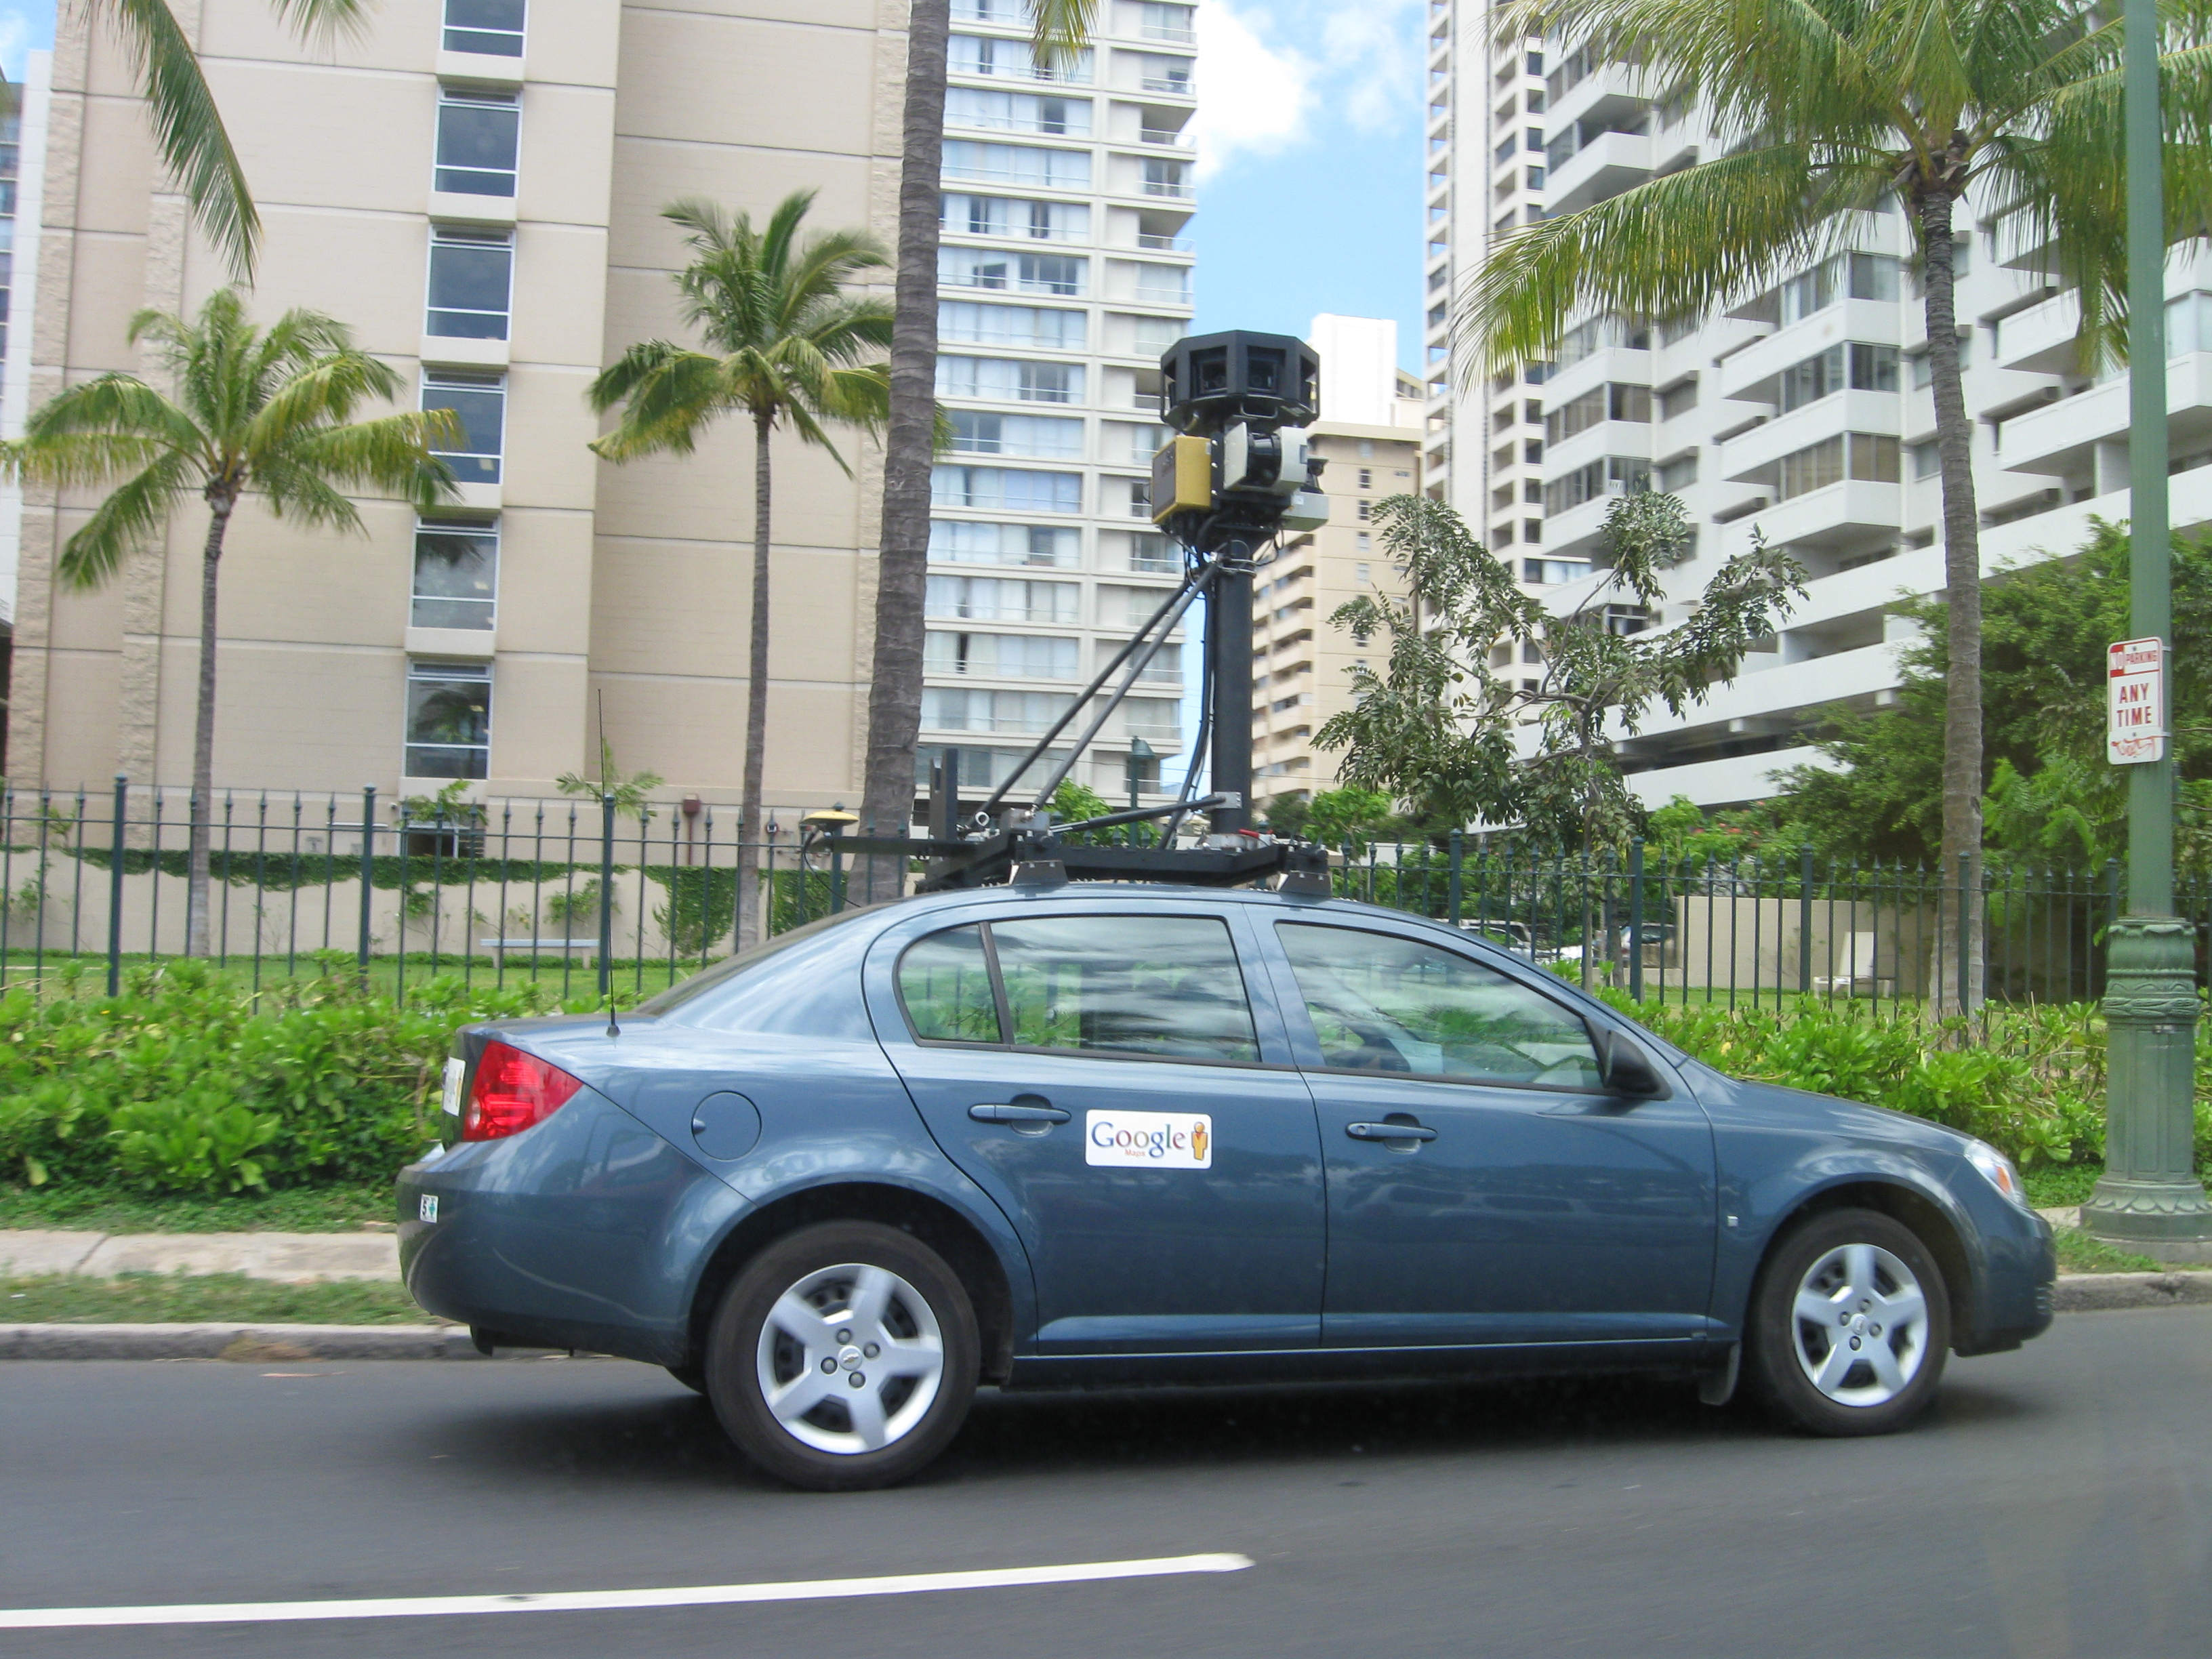 Google Street View – Wikipedia